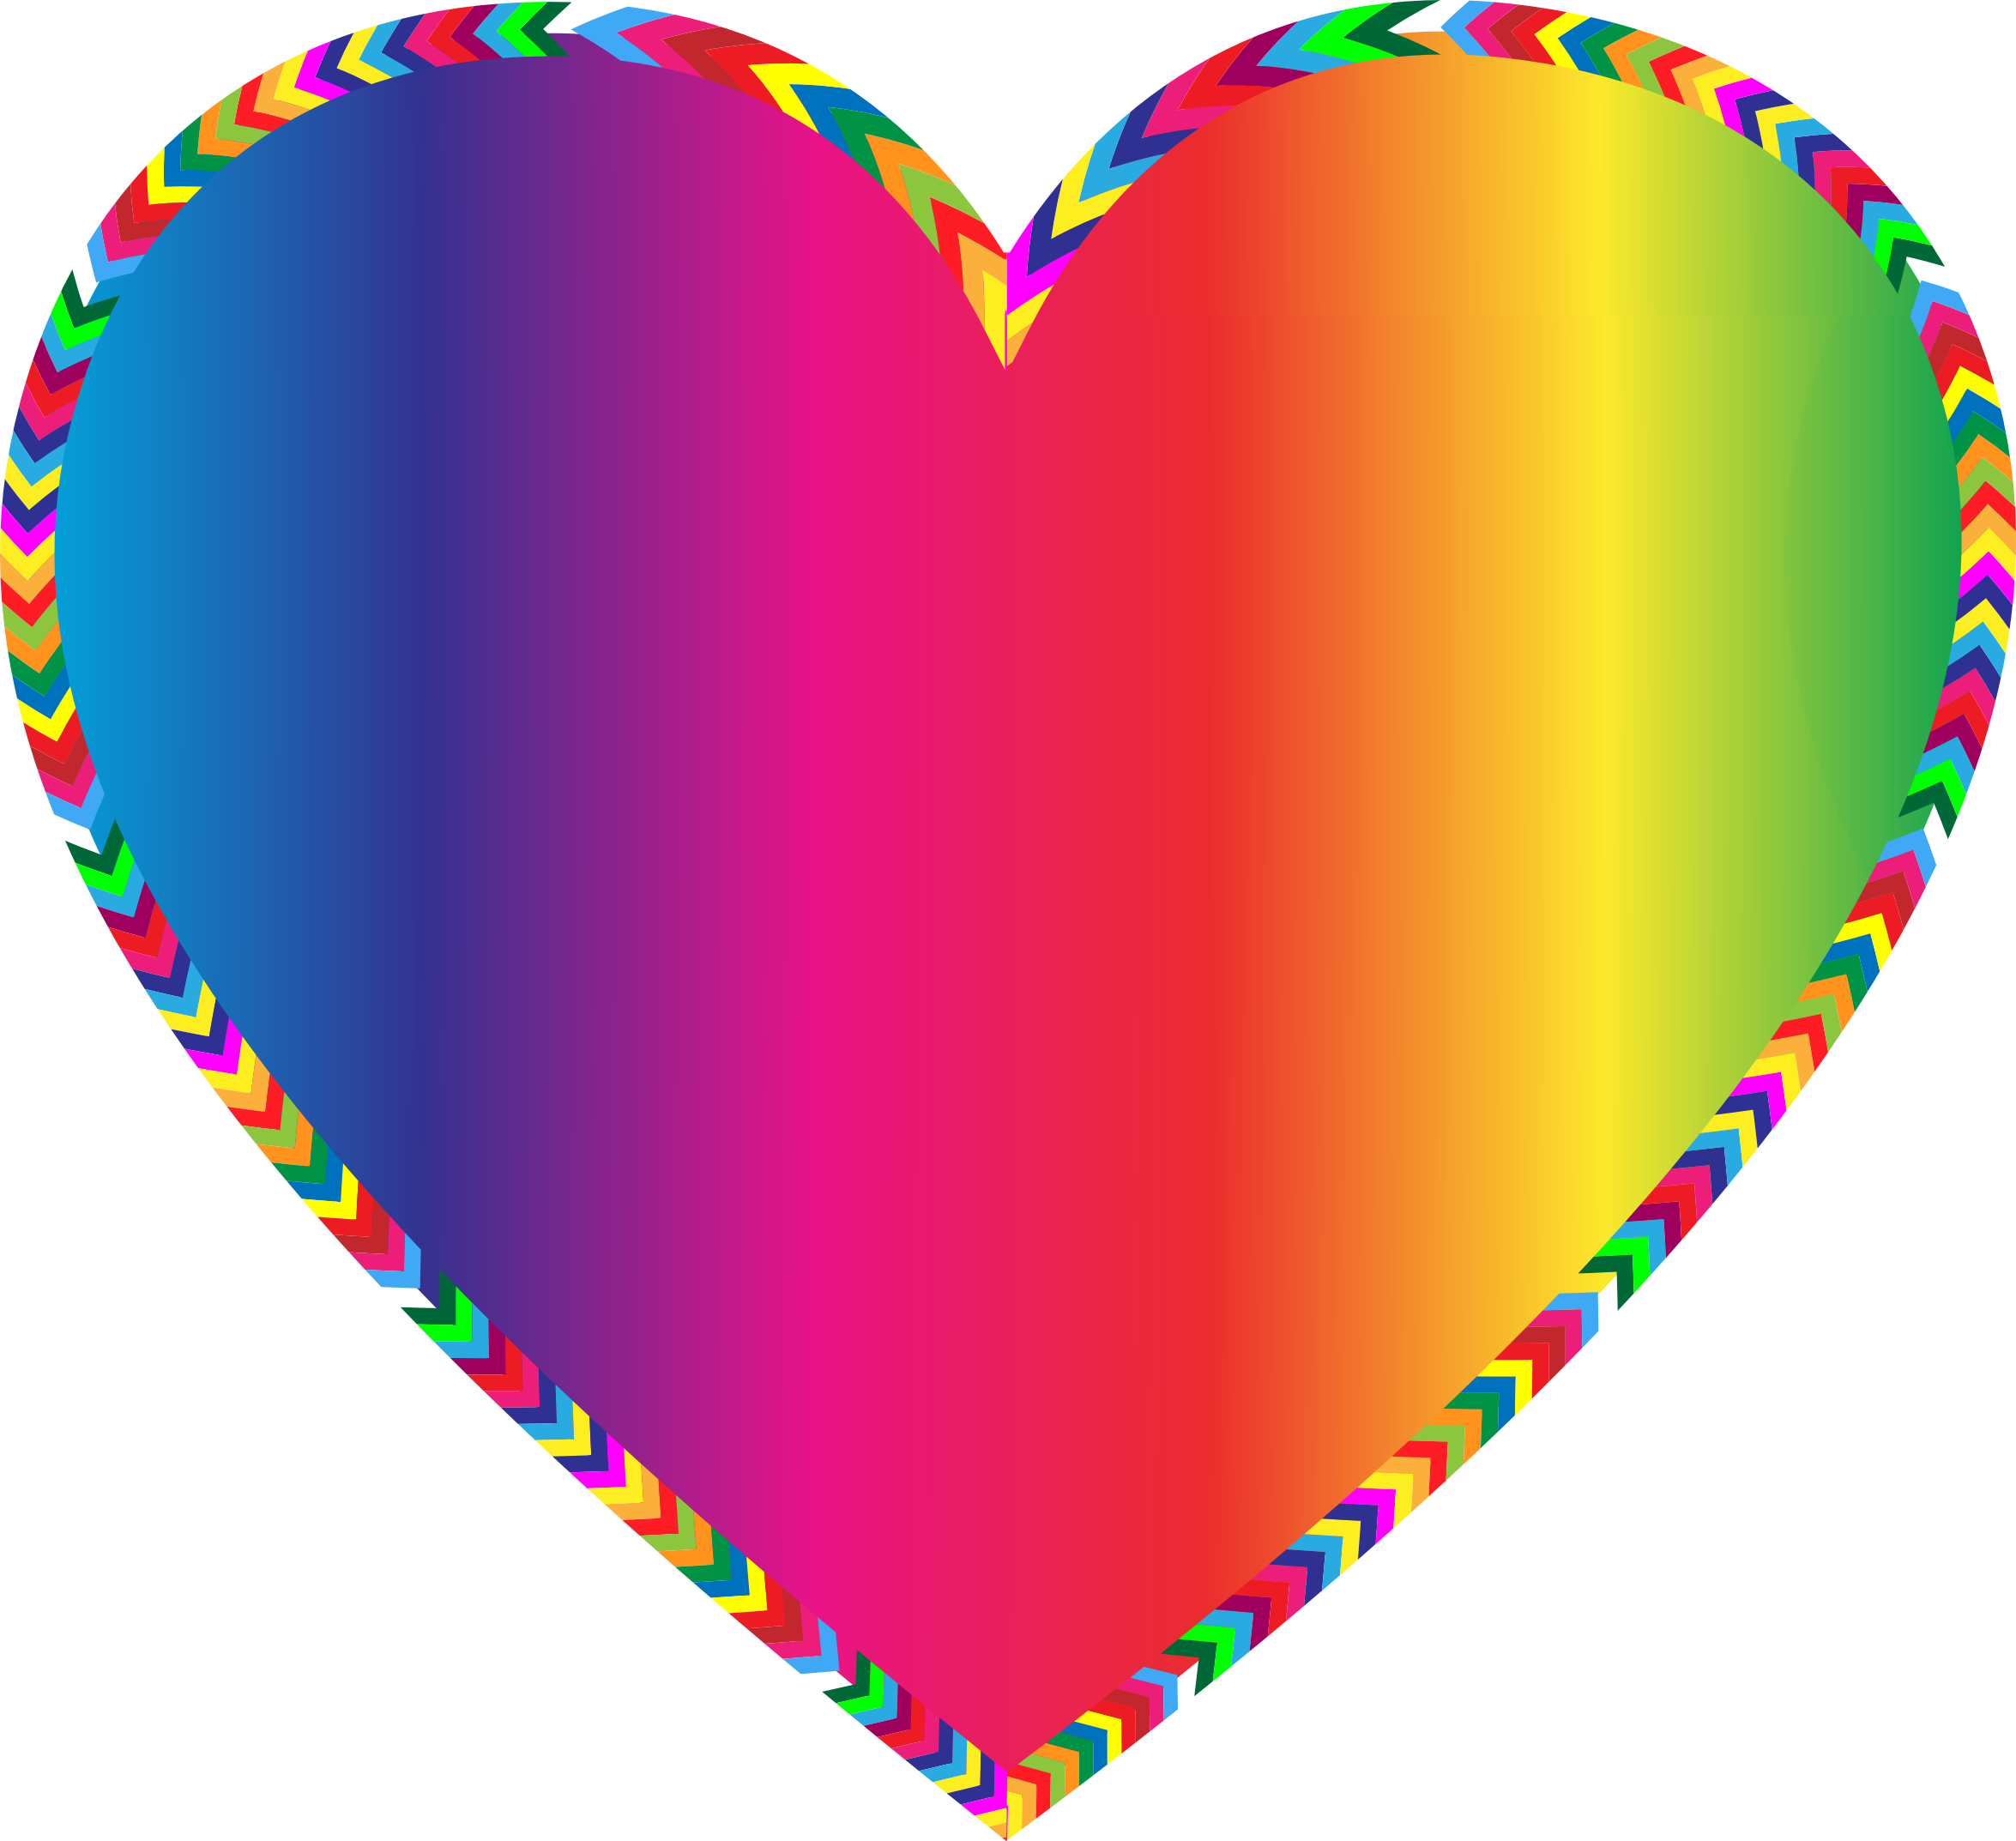 Multi Different Colors Heart Clipart Png Download 2350x2146 Png Download Heart Wallpaper Heart With Arrow Rainbow Heart